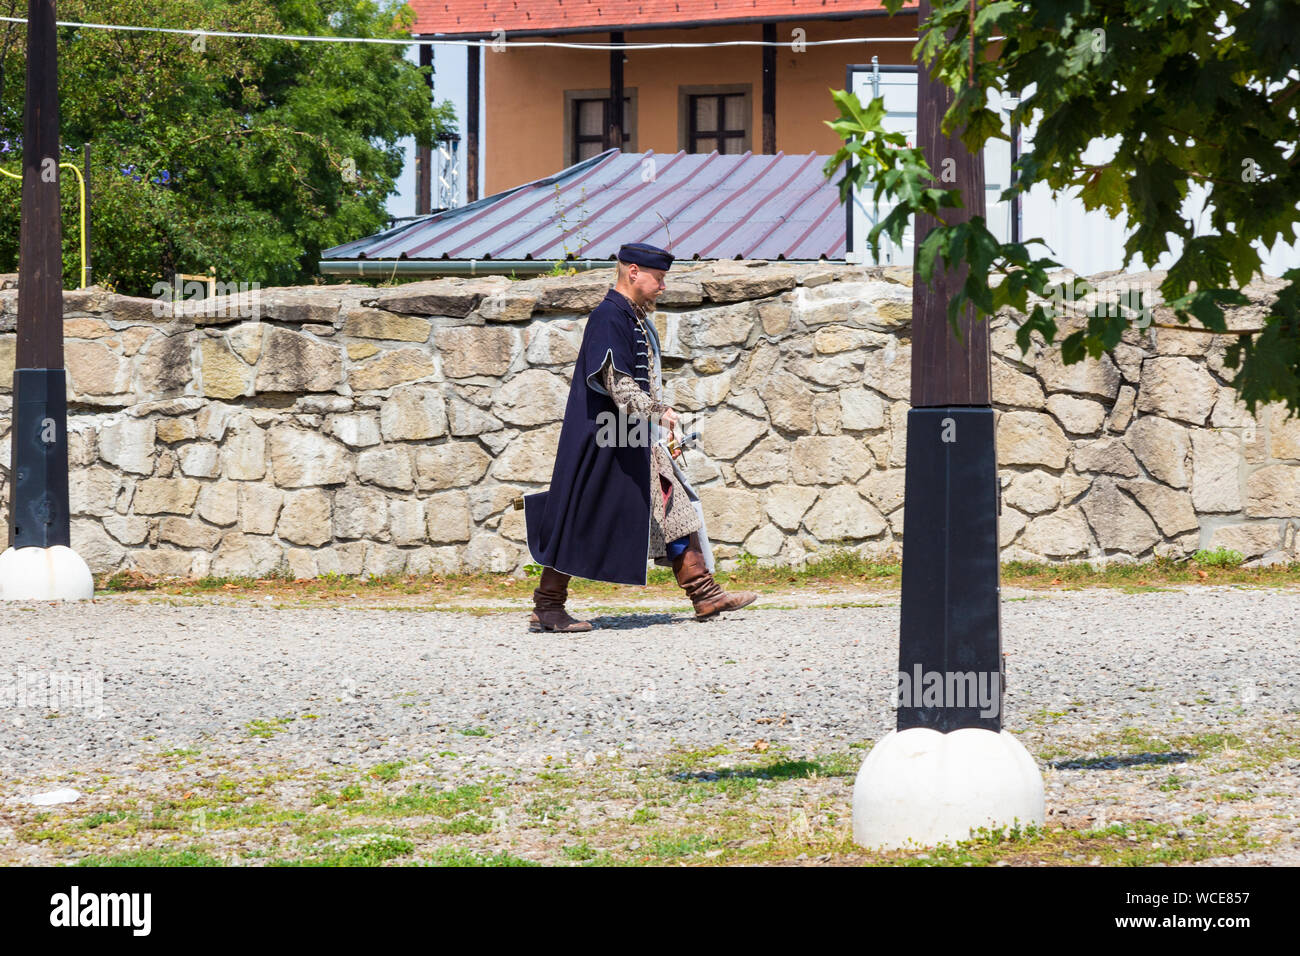 Man walking in traditional 16th century Hungarian costume in the Castle of Eger, Hungary Stock Photo